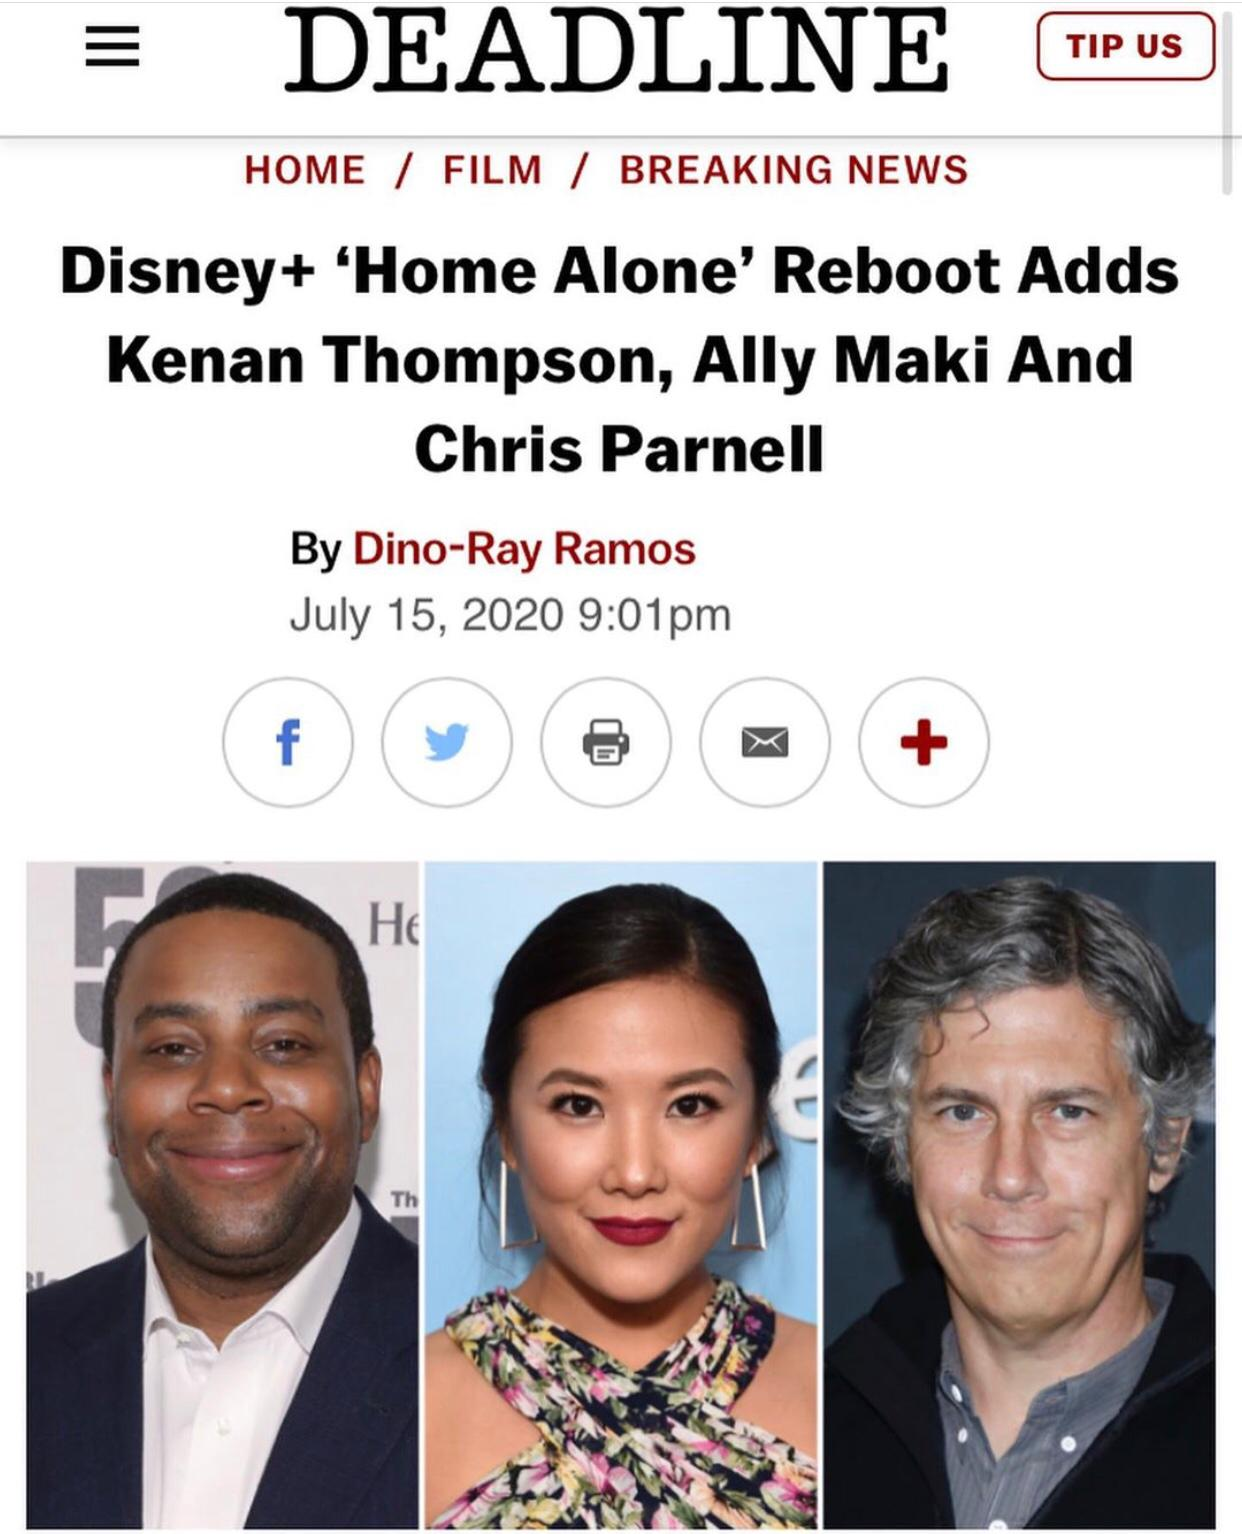 Disney+ 'Home Alone' Reboot Cast announced  - July 16th, 2020